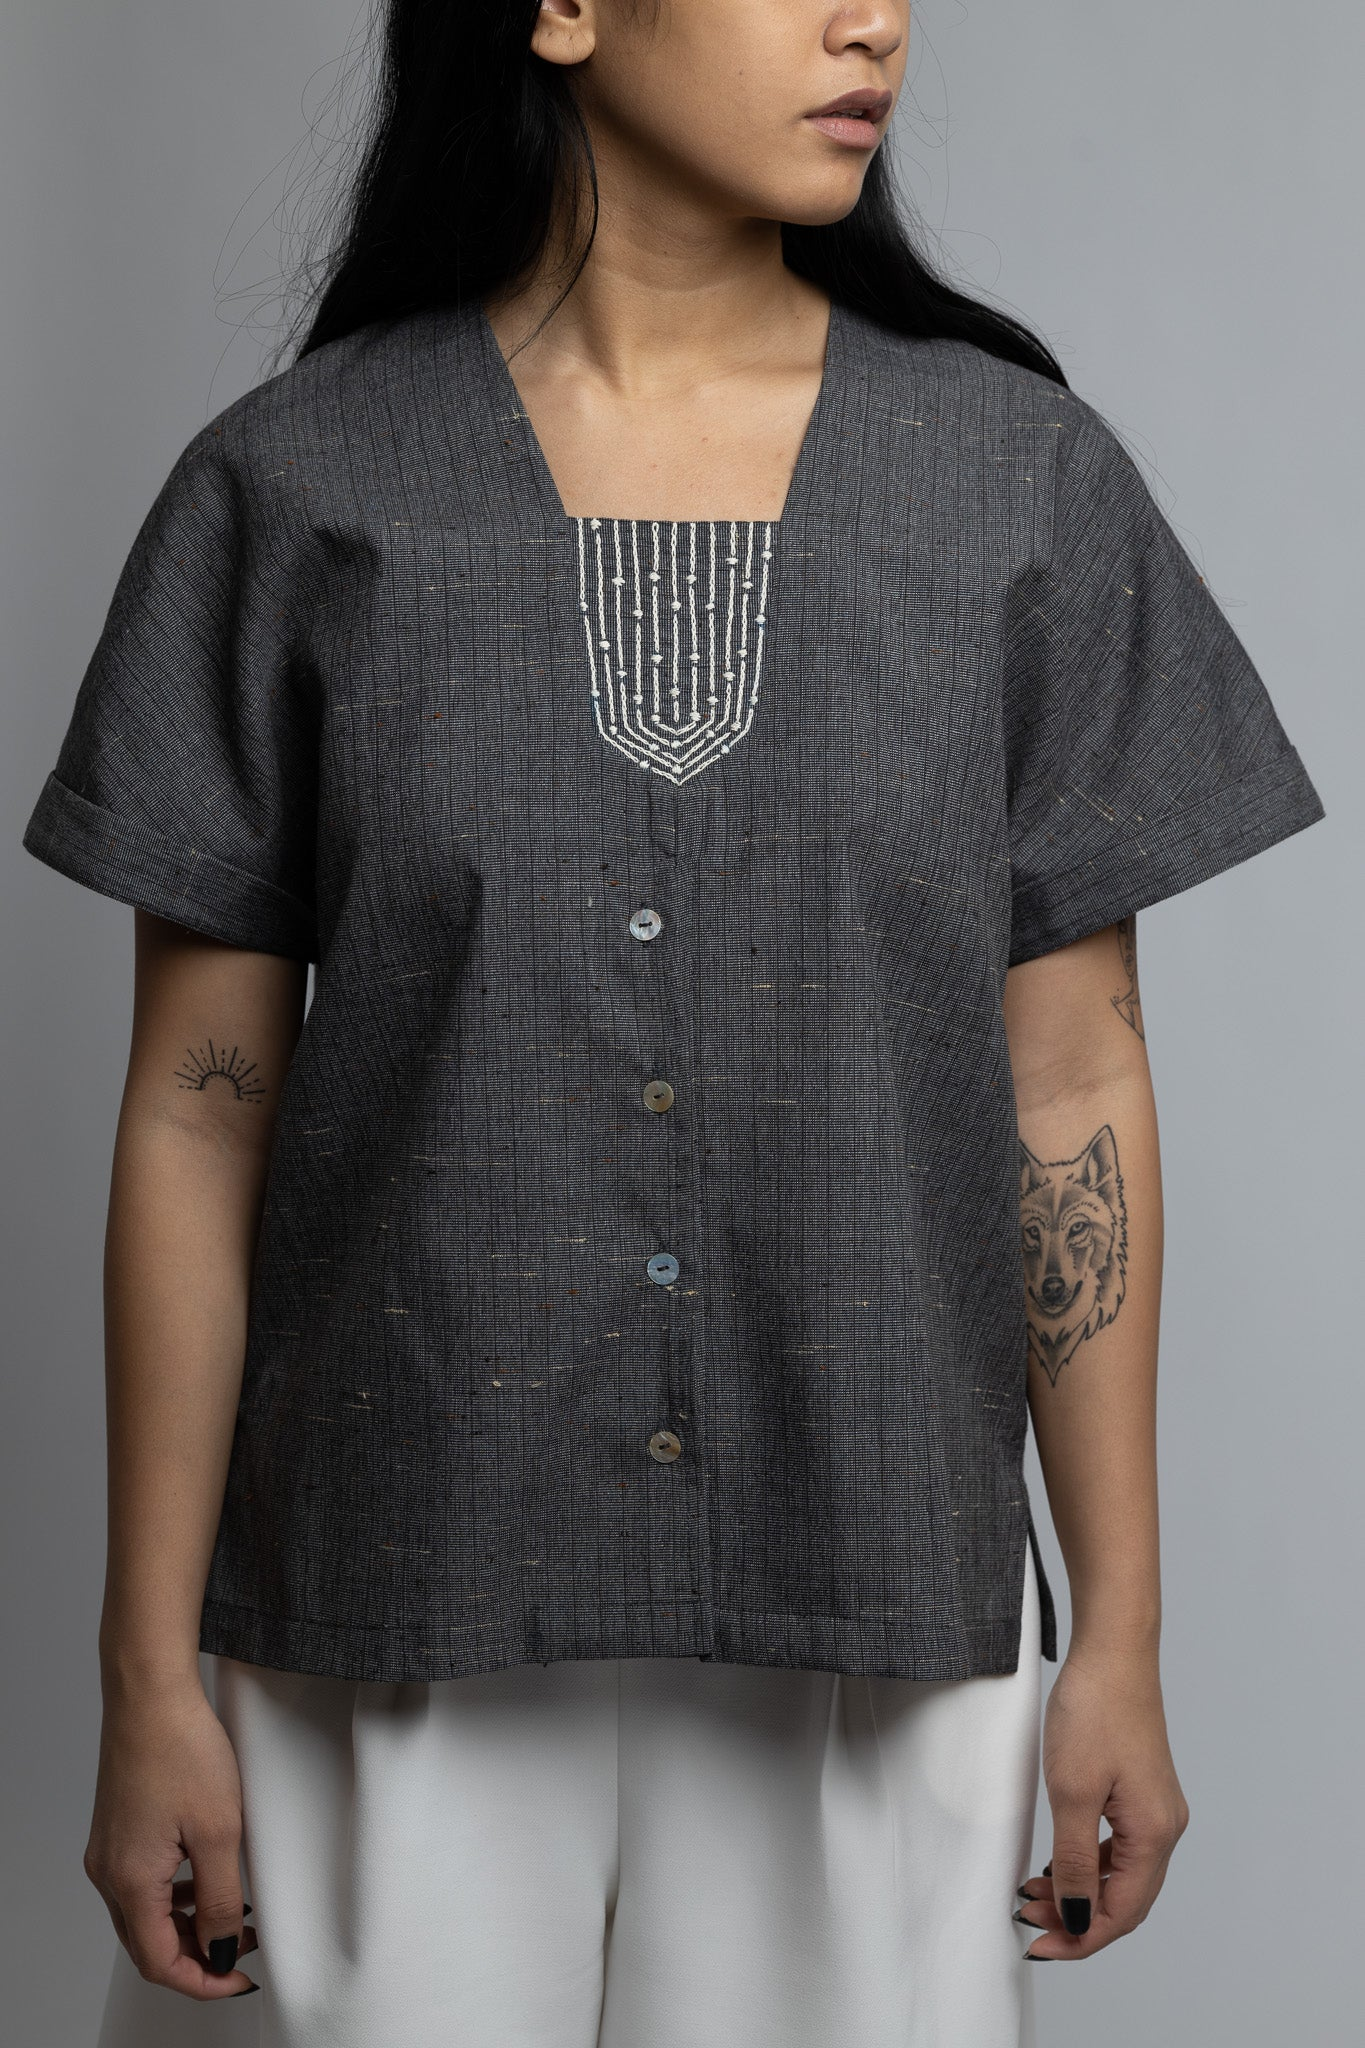 Shajara Summer Shirt